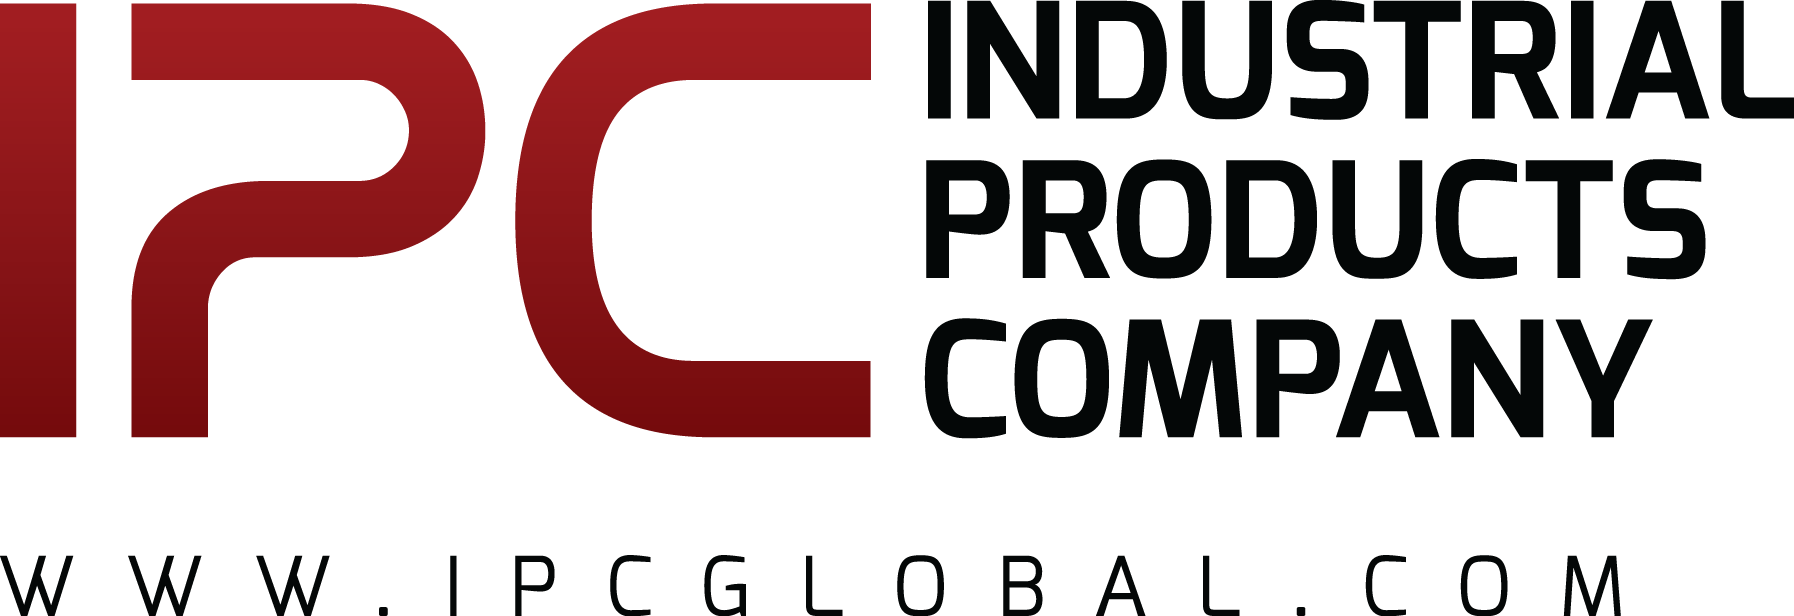 Industrial Products Company